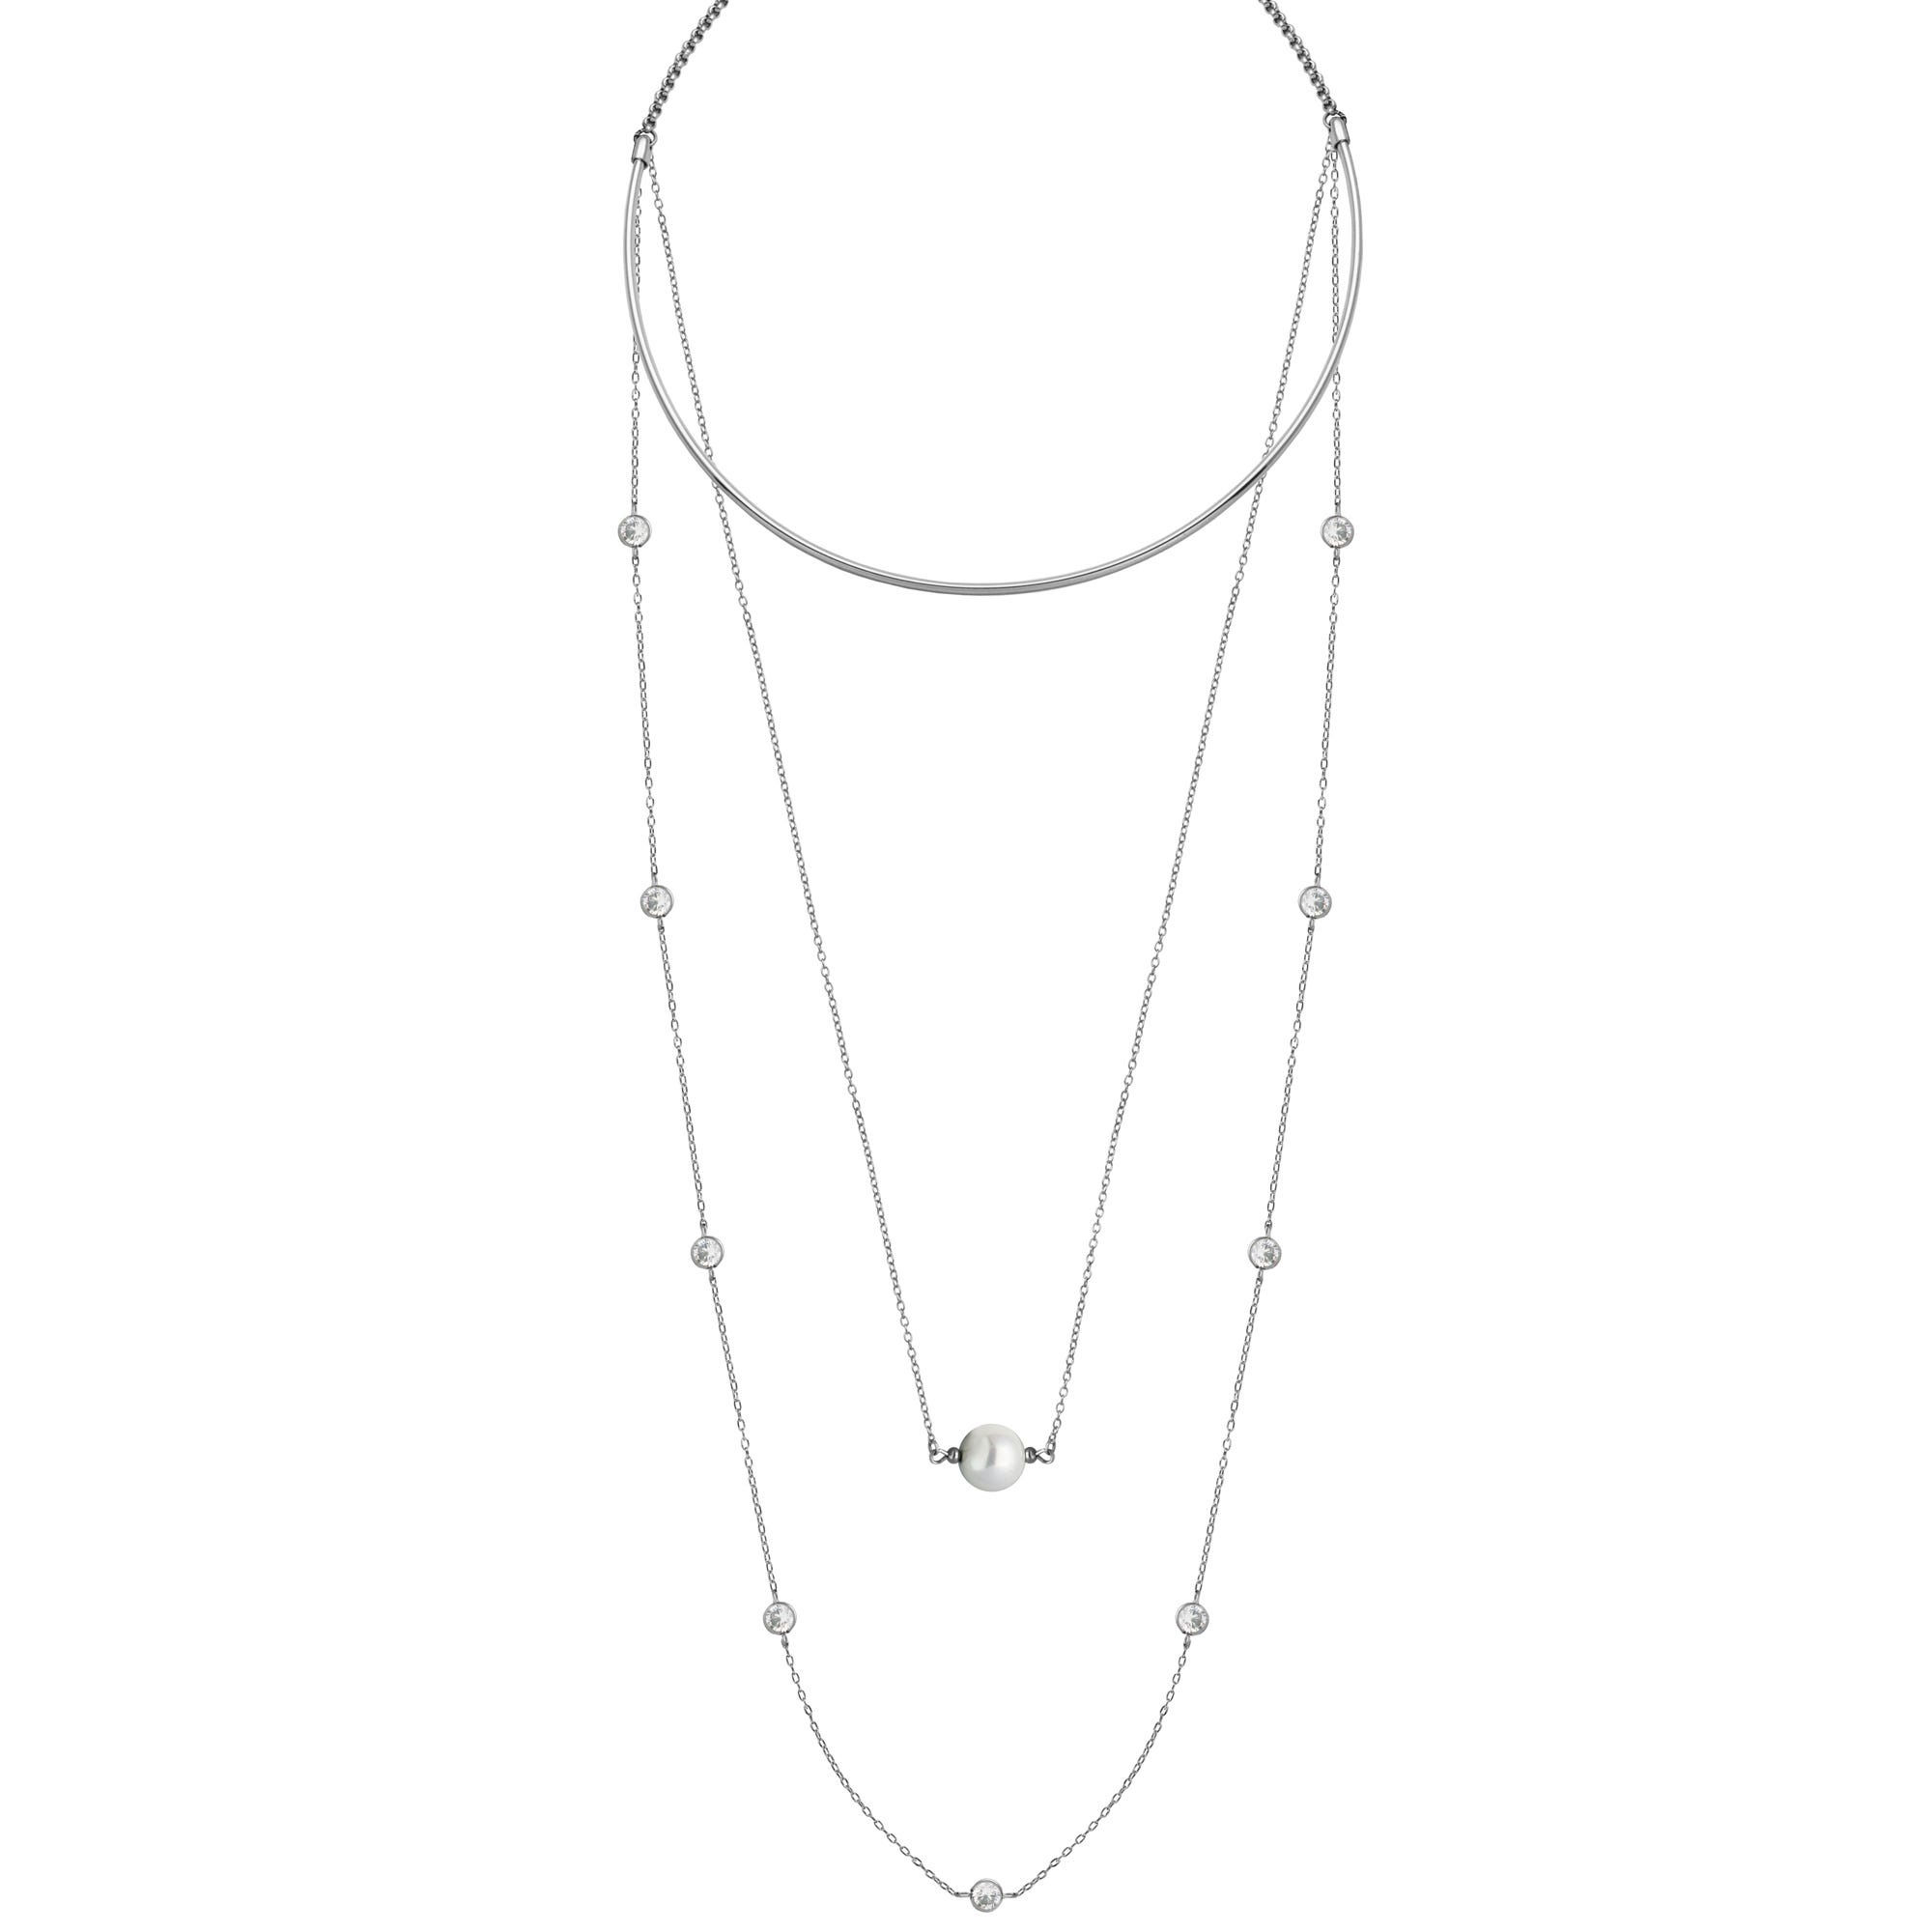 Three Layer Fashion Necklace in Stainless Steel